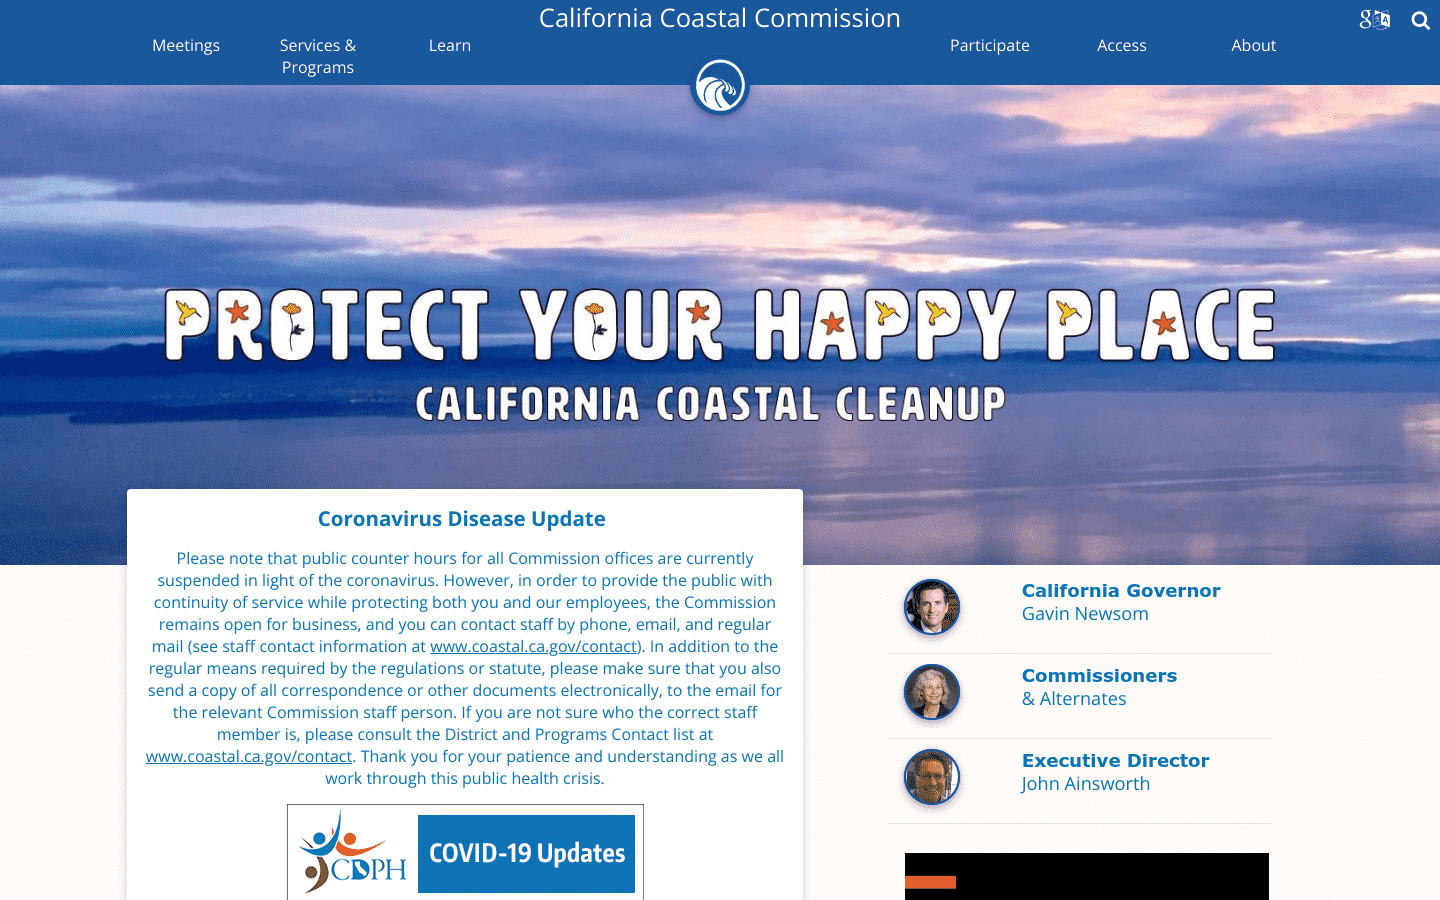 California Coastal Commission reviews and complaints